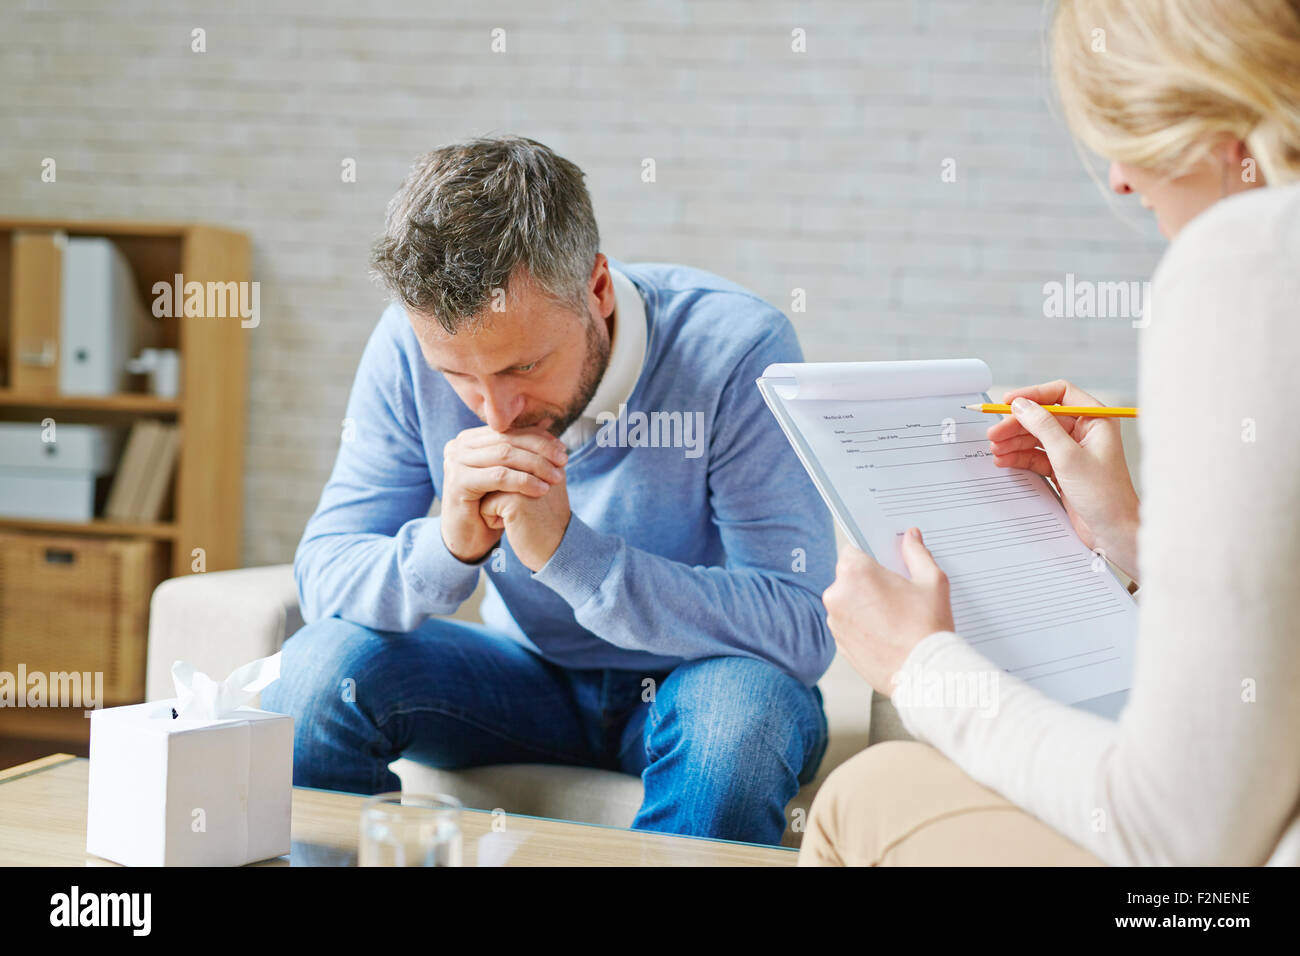 Tense man visiting his psychologist - Stock Image